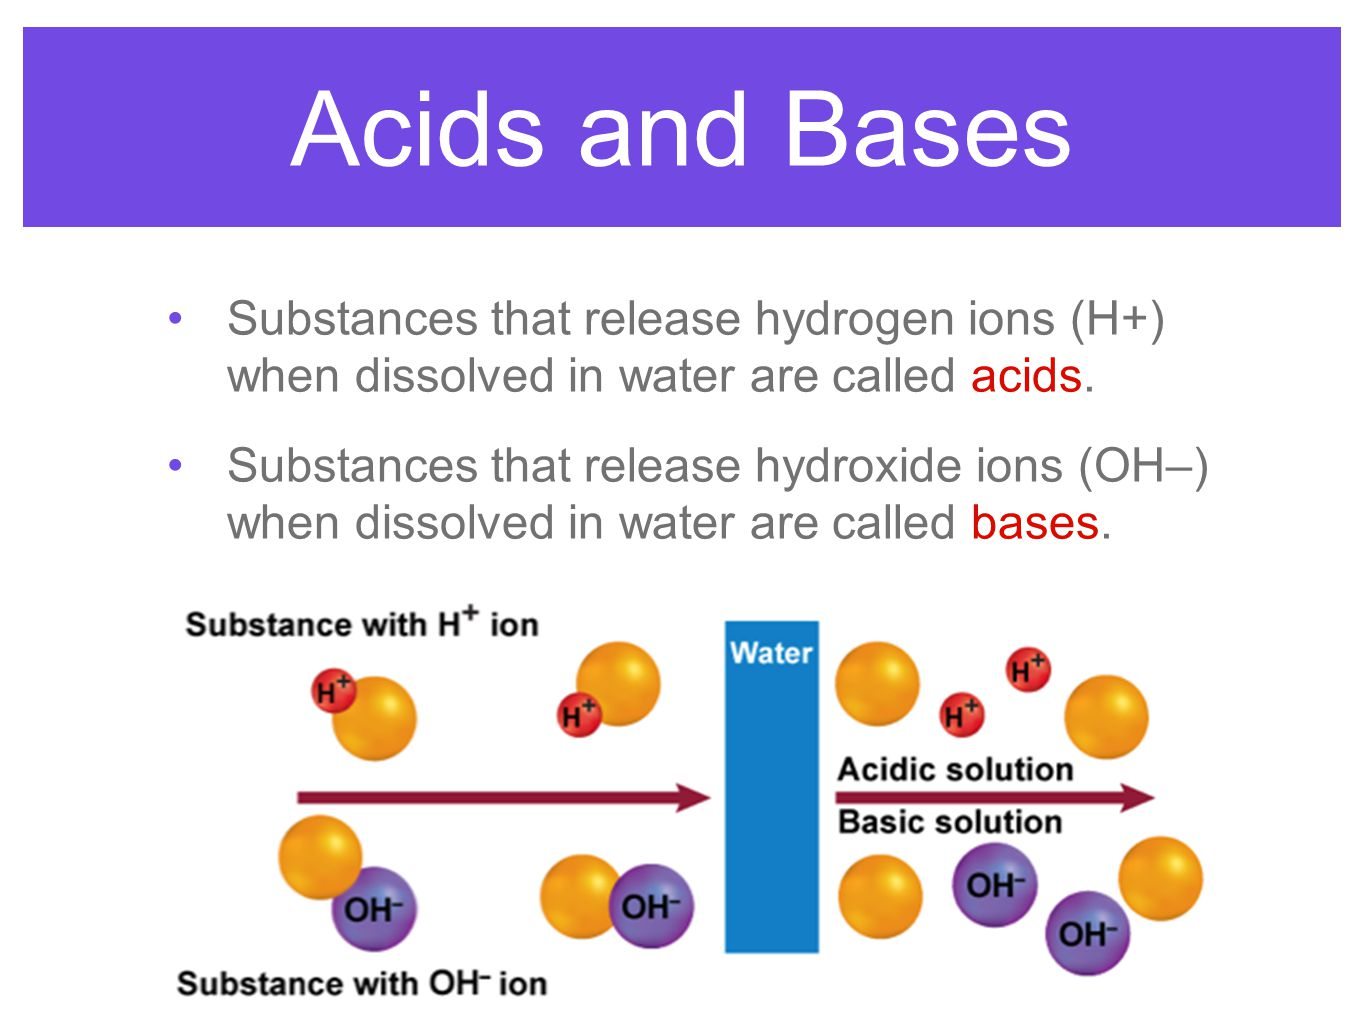 Acids and Bases Substances that release hydrogen ions (H+) when dissolved in water are called acids. Substances that release hydroxide ions (OH–) when